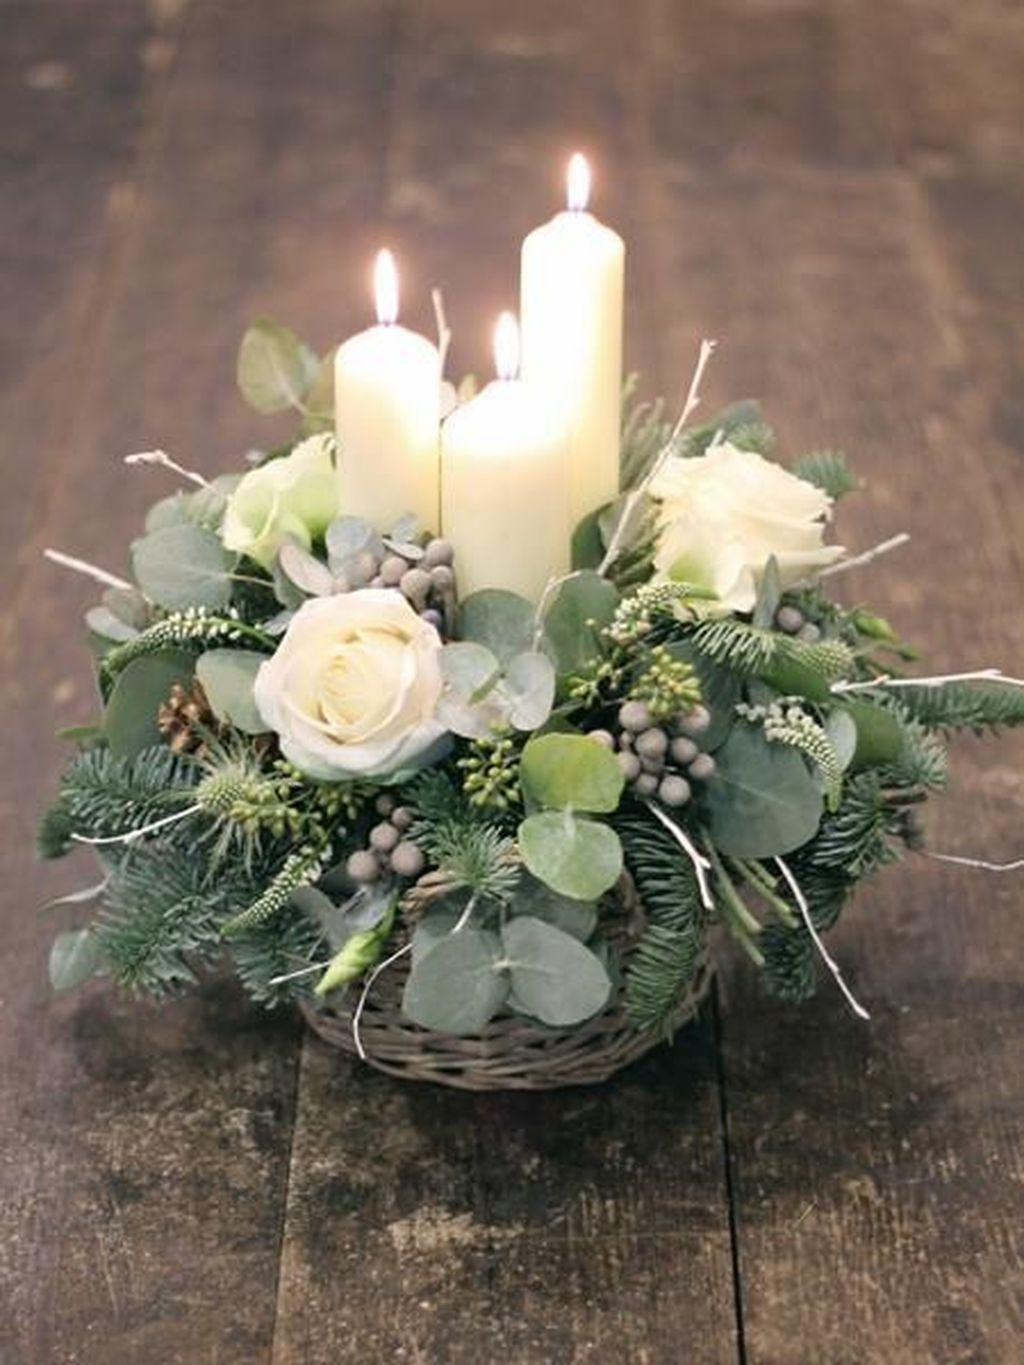 50 The Best Winter Table Decorations You Need to Try - SWEETYHOMEE #kerstbloemstukken